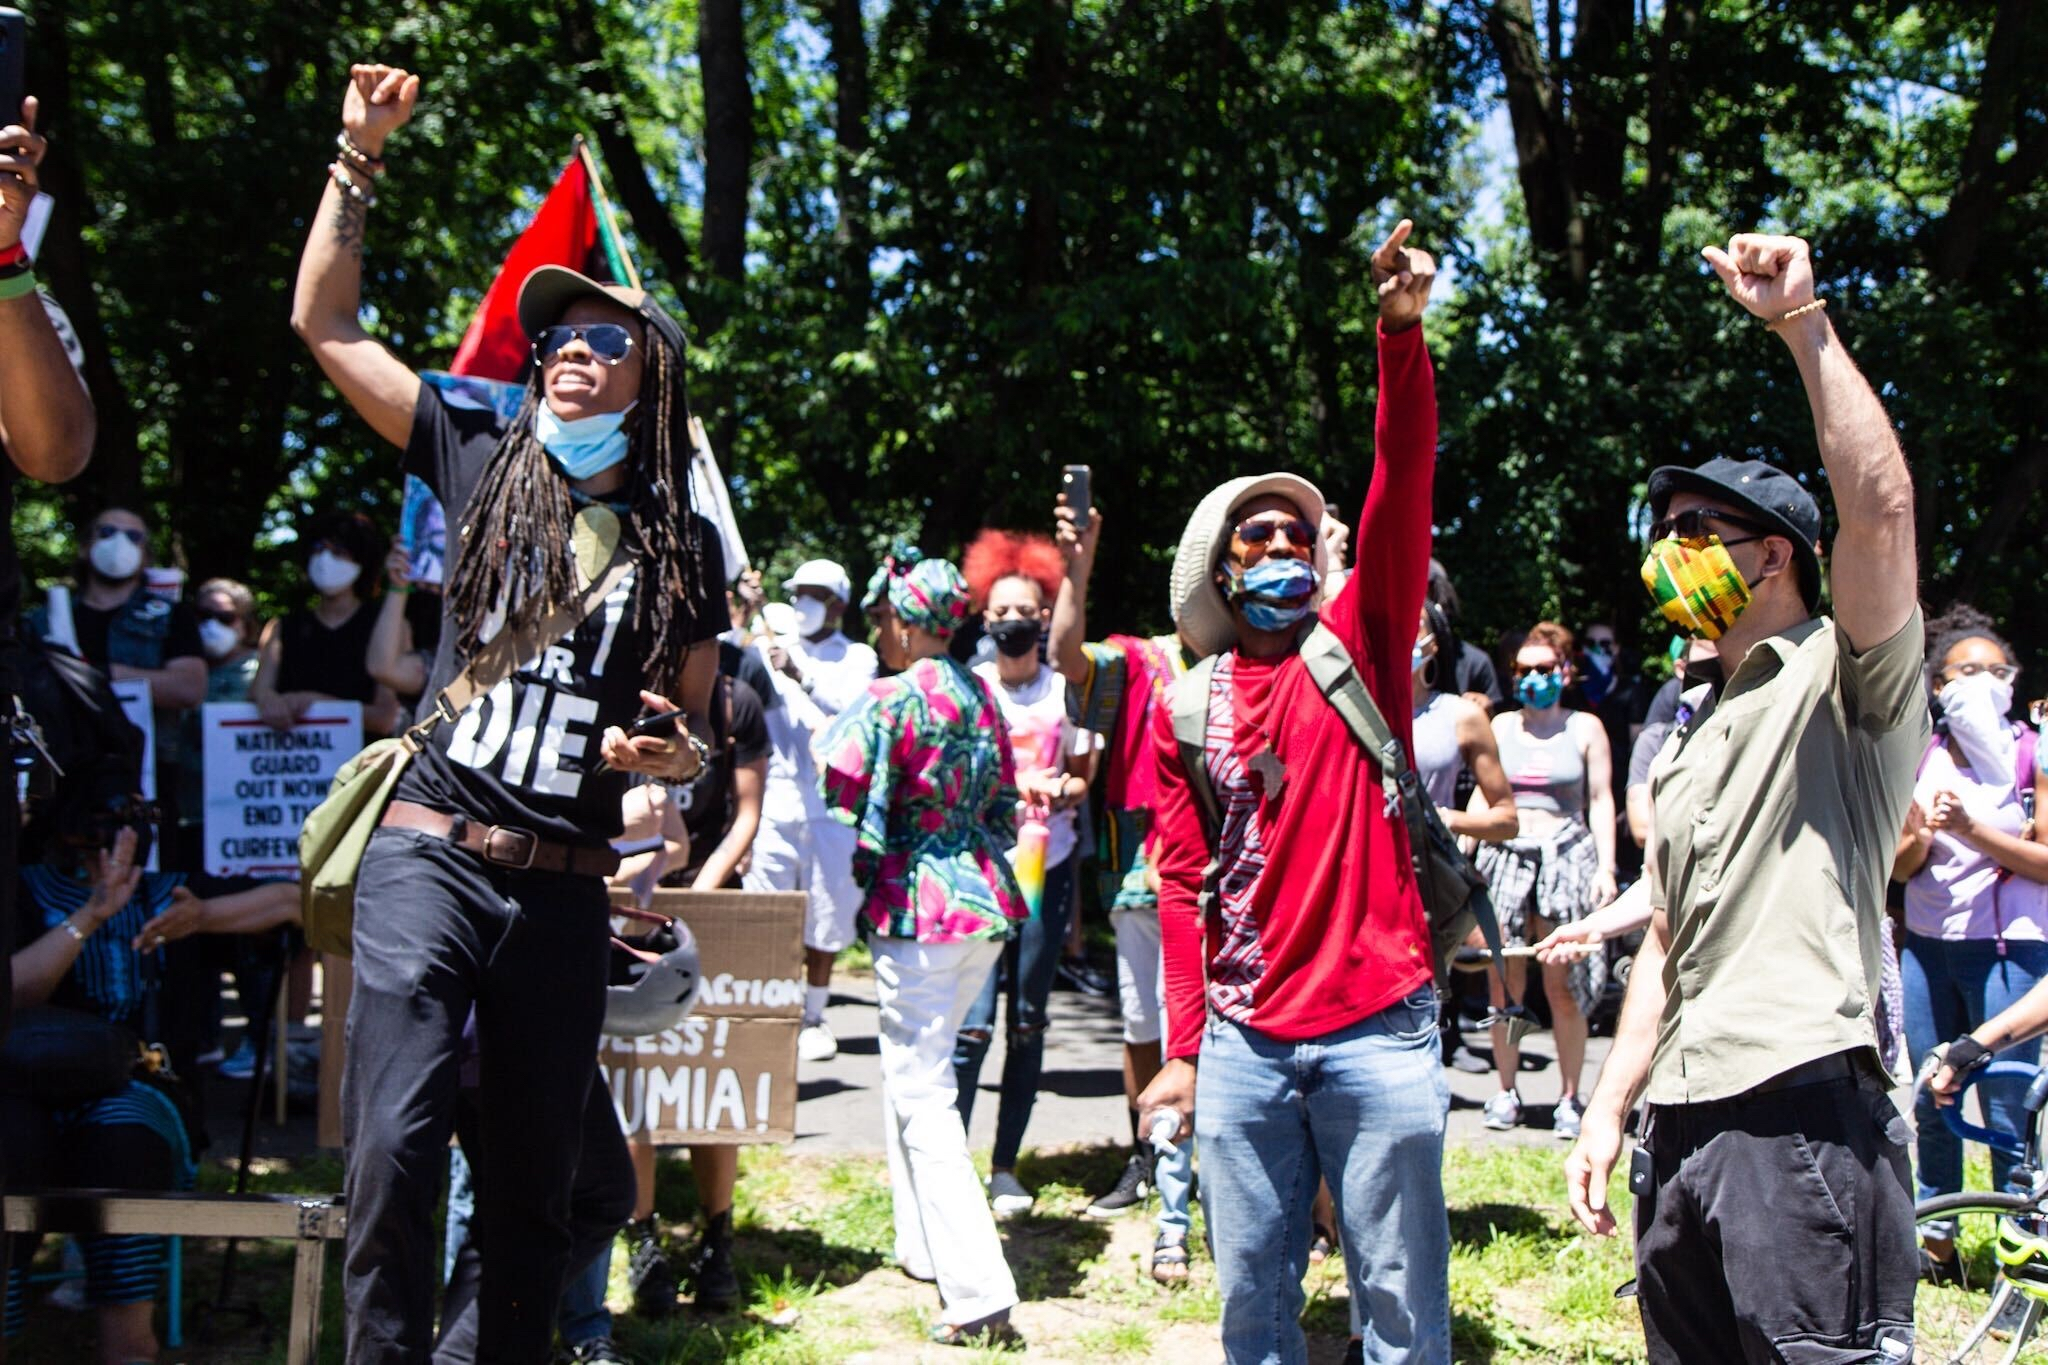 Mike Africa Jr. raises a fist with other protesters